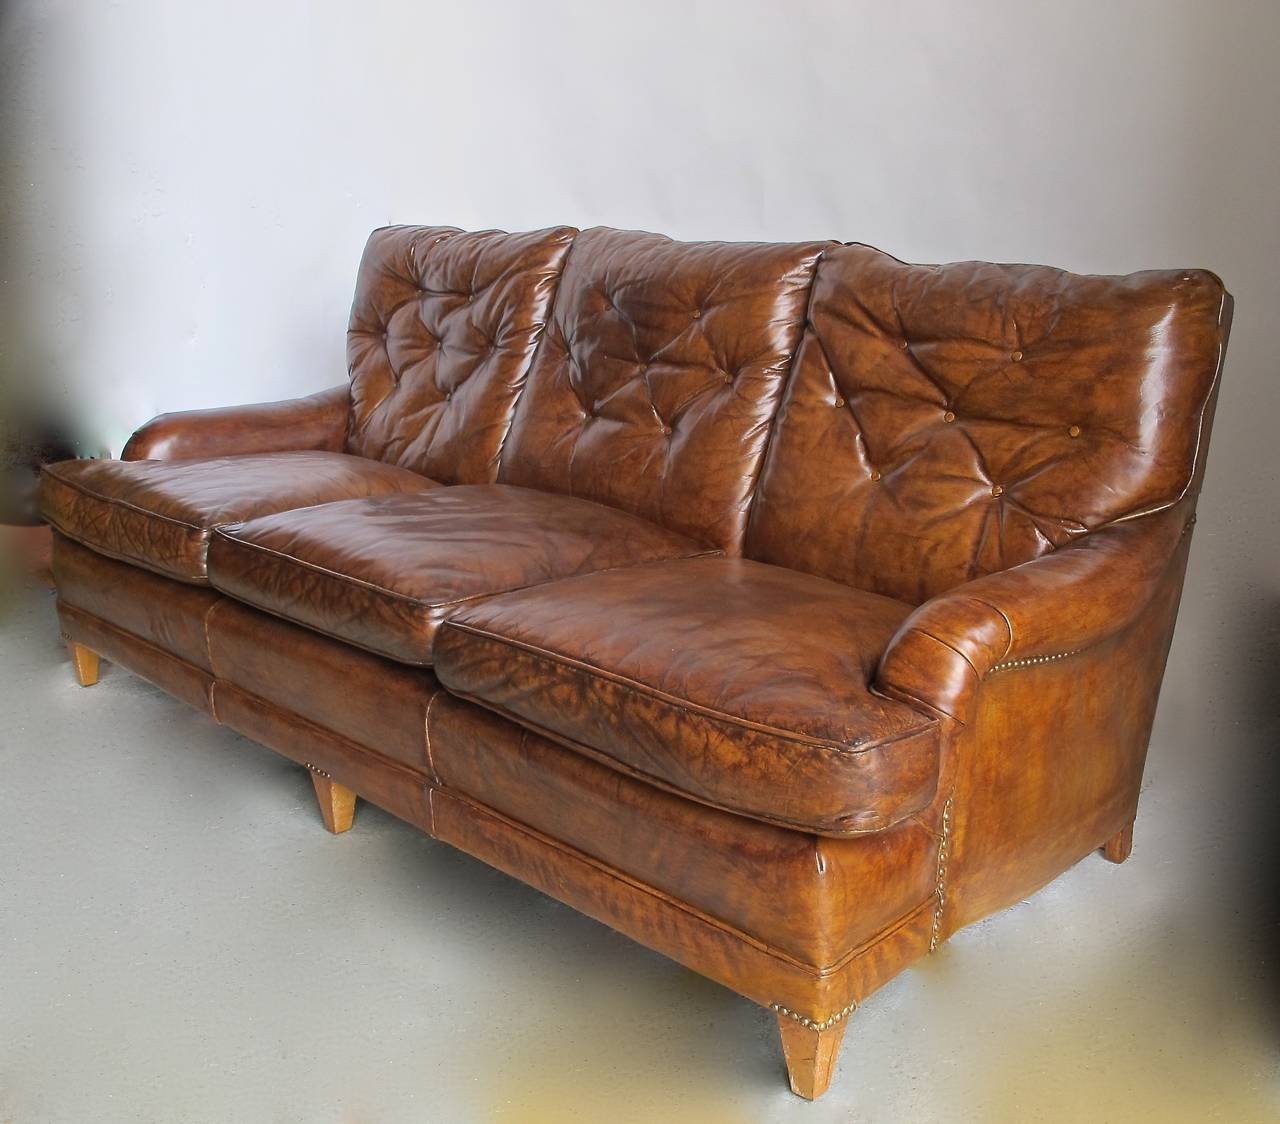 Tufted Leather Sofa Mid 20th Century At 1stdibs